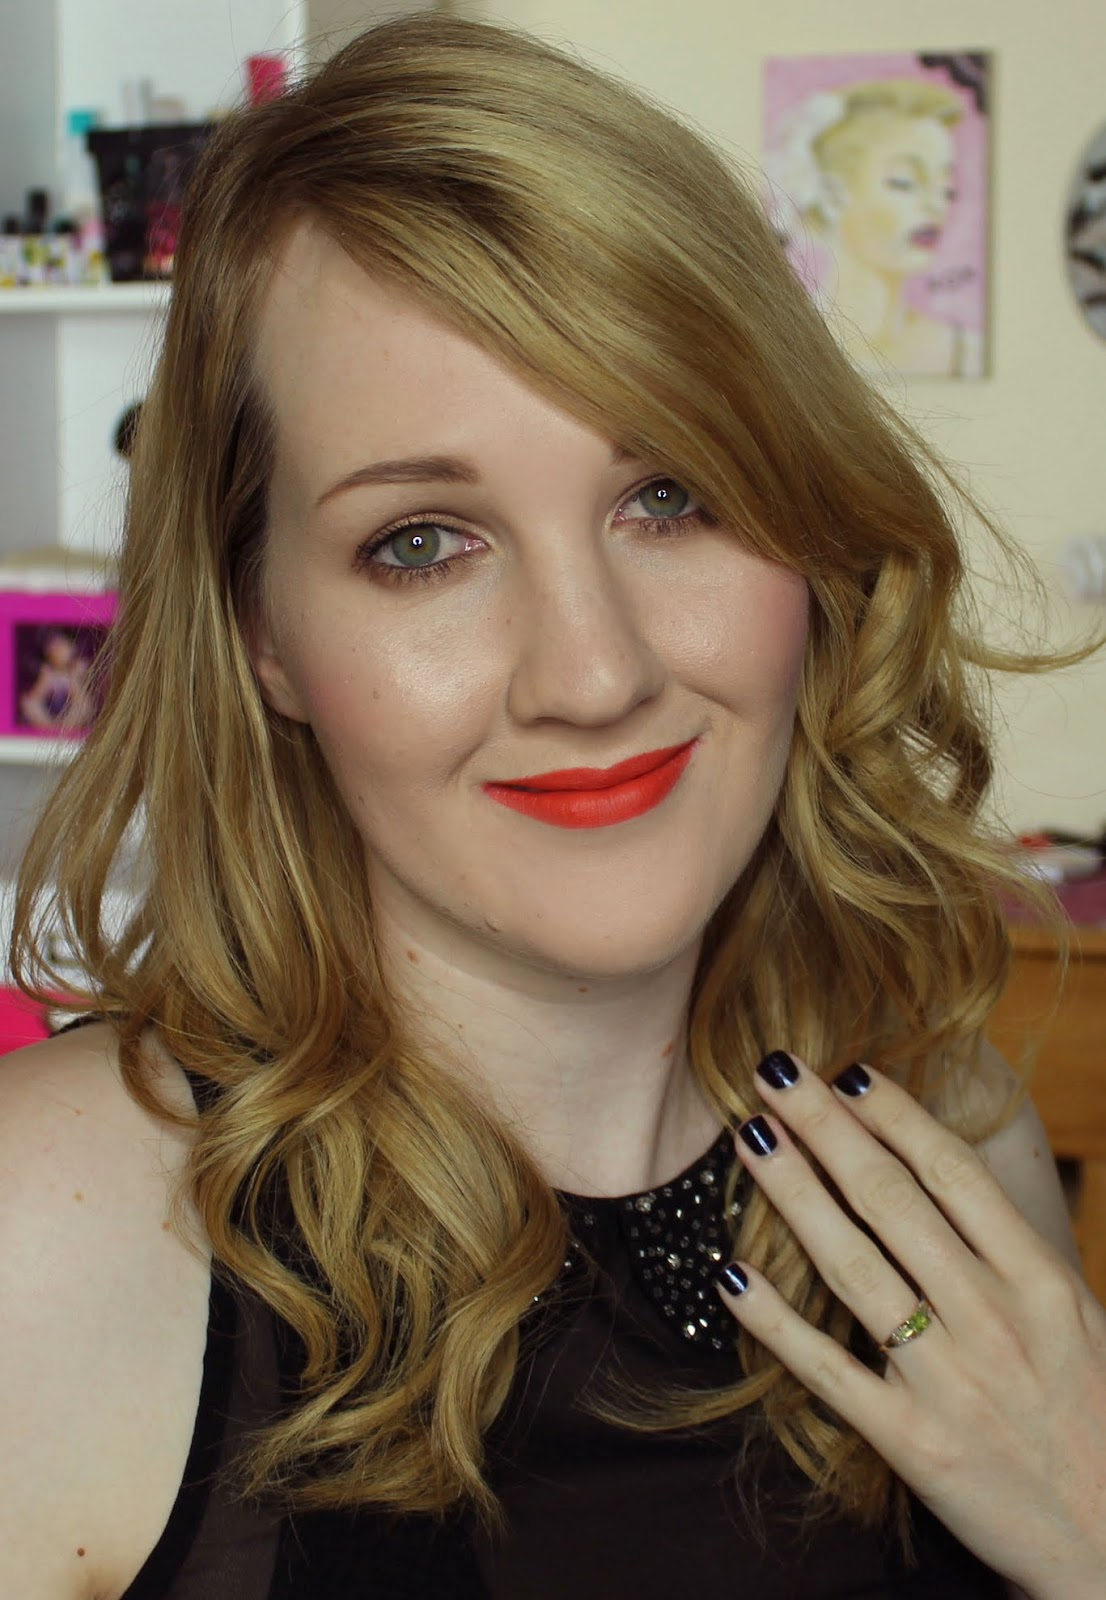 Etude House Vivid Pop Stick #7 California Girl Swatches & Review